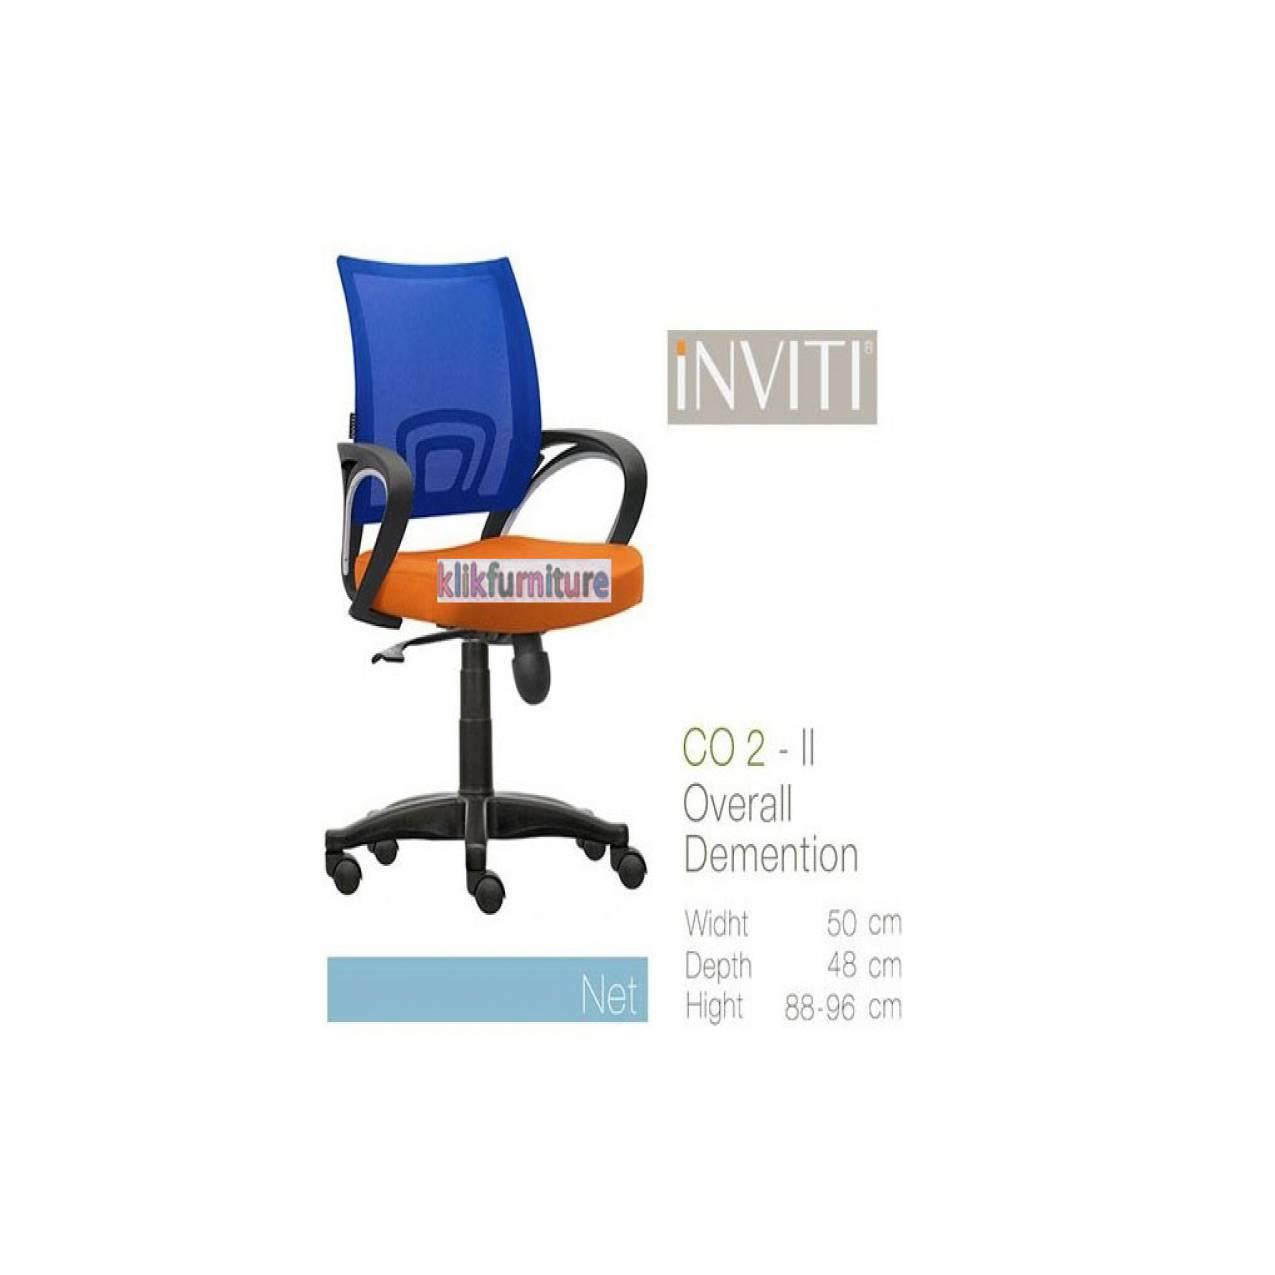 CO2 II INVITI Kursi Kantor/Office Chair